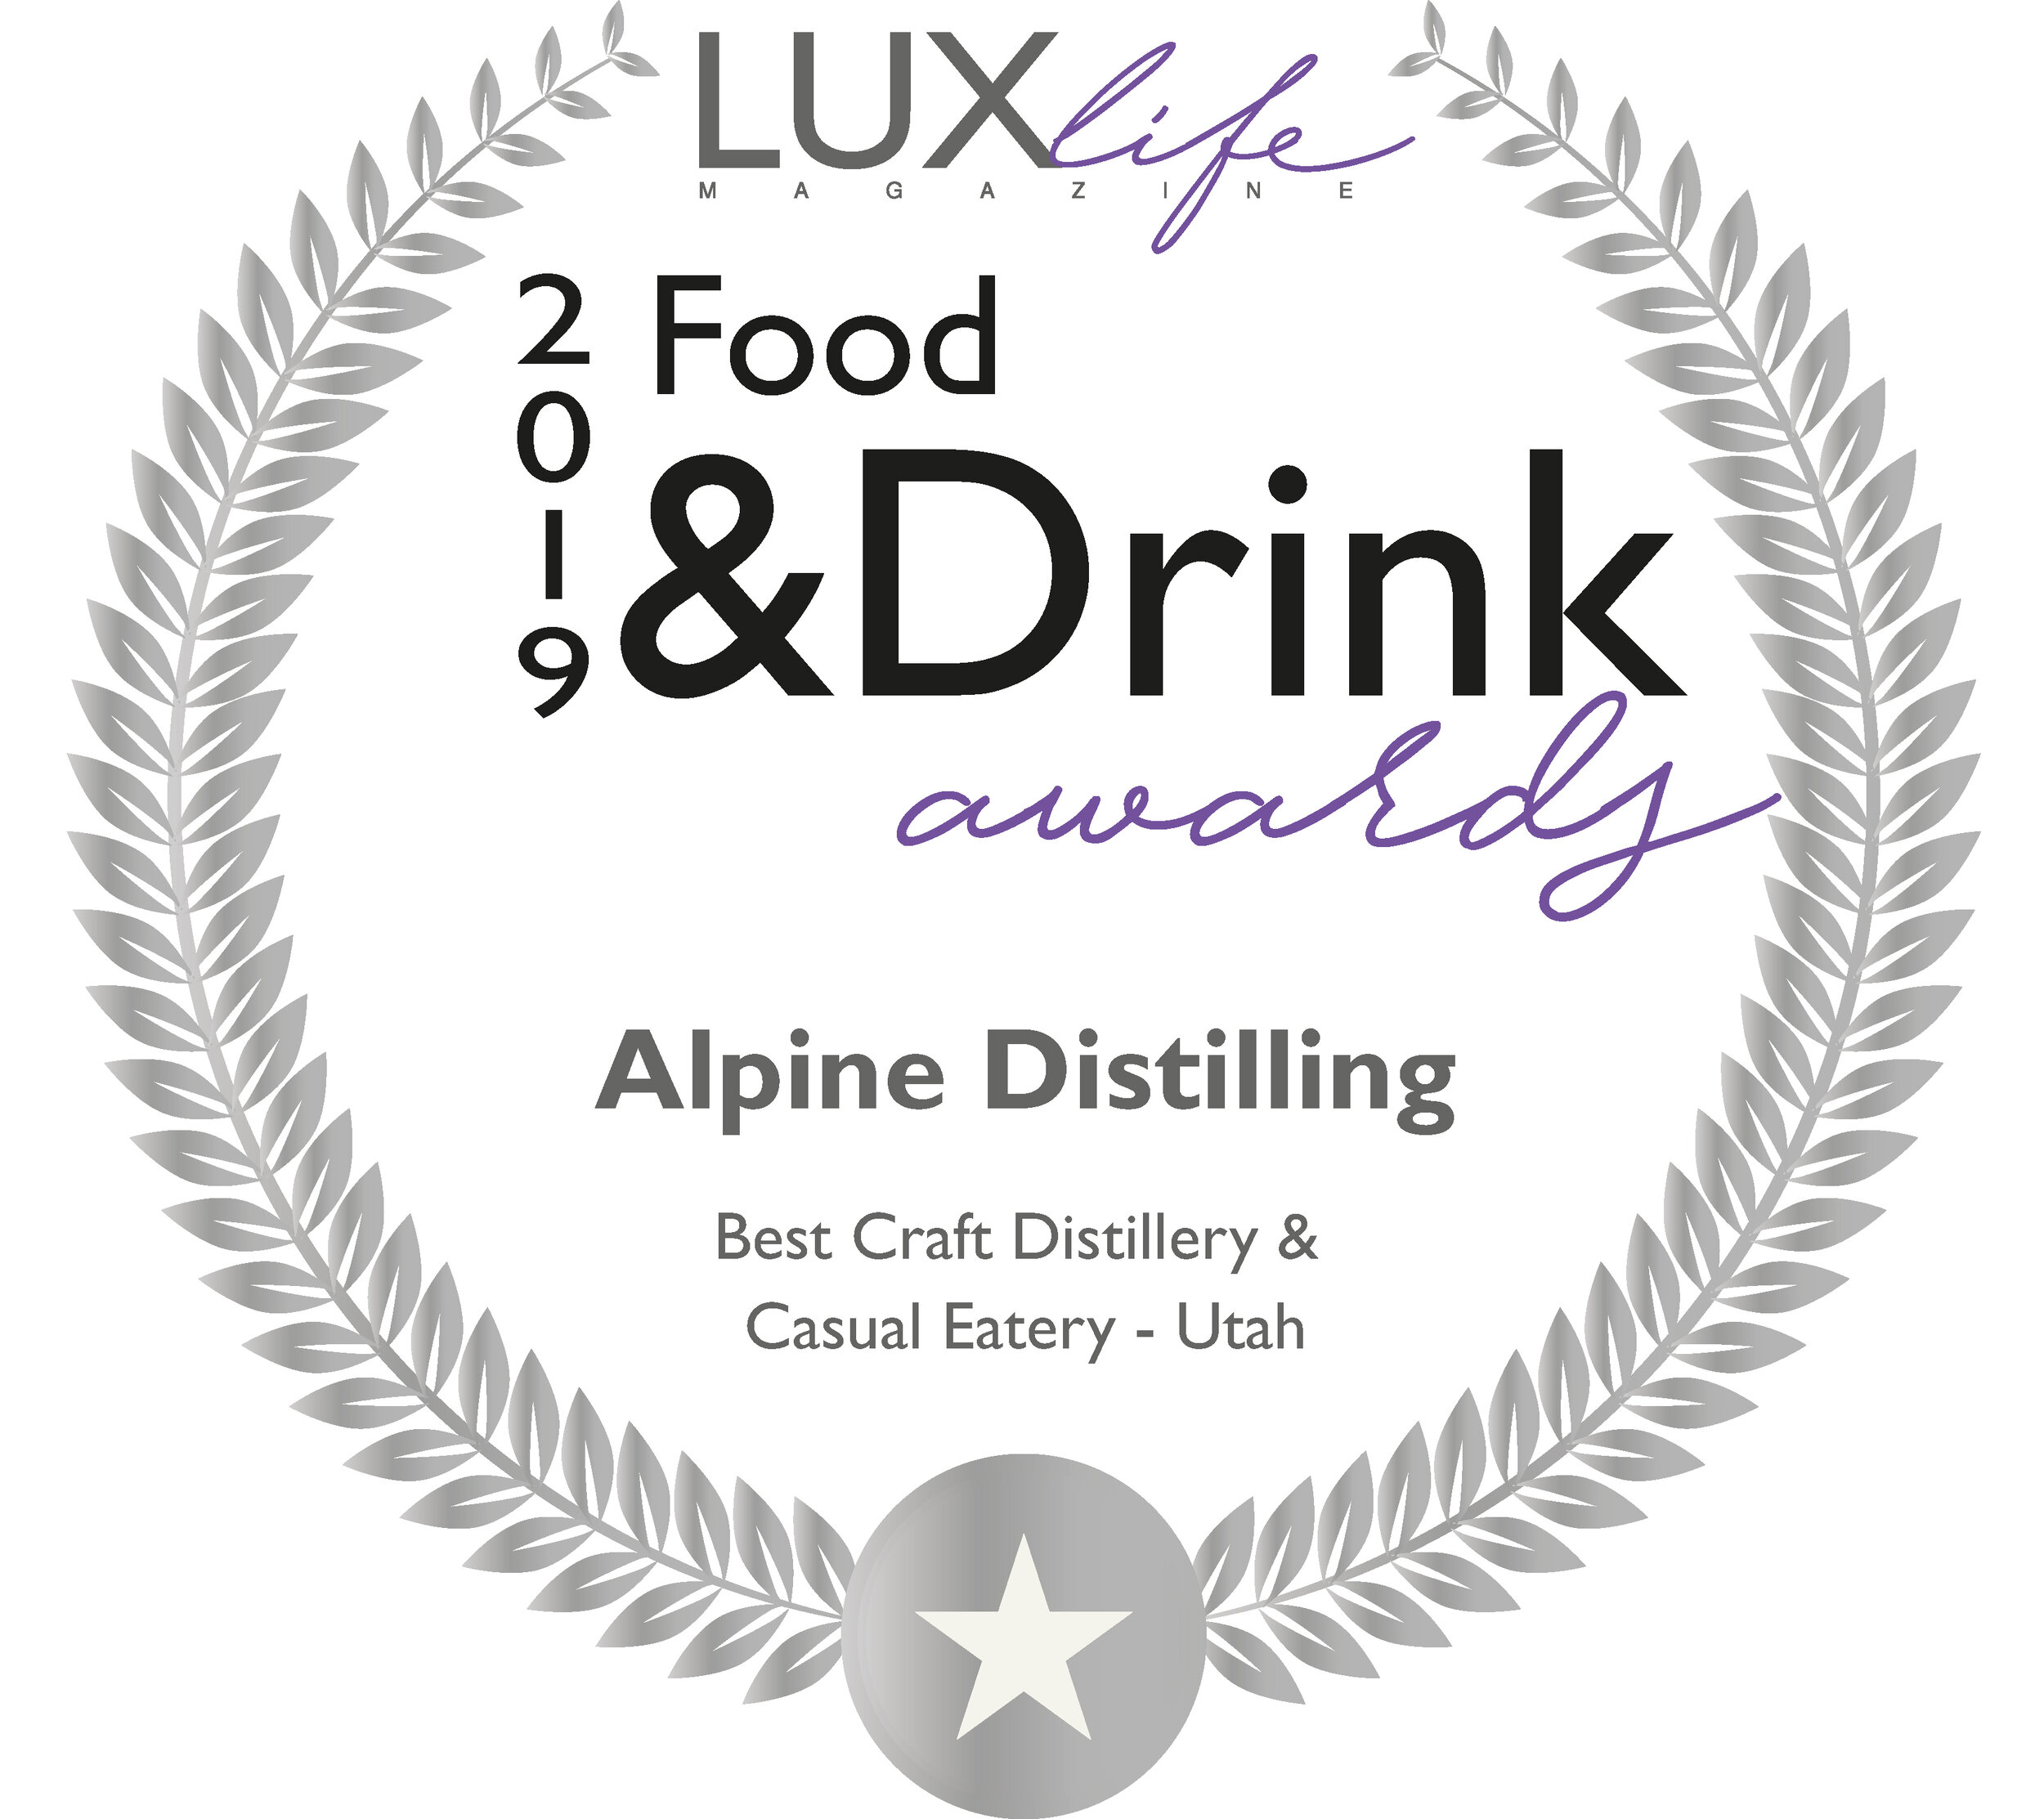 Sep19510-LUX 2019 Food and Drink Award  Winners Logo.jpg